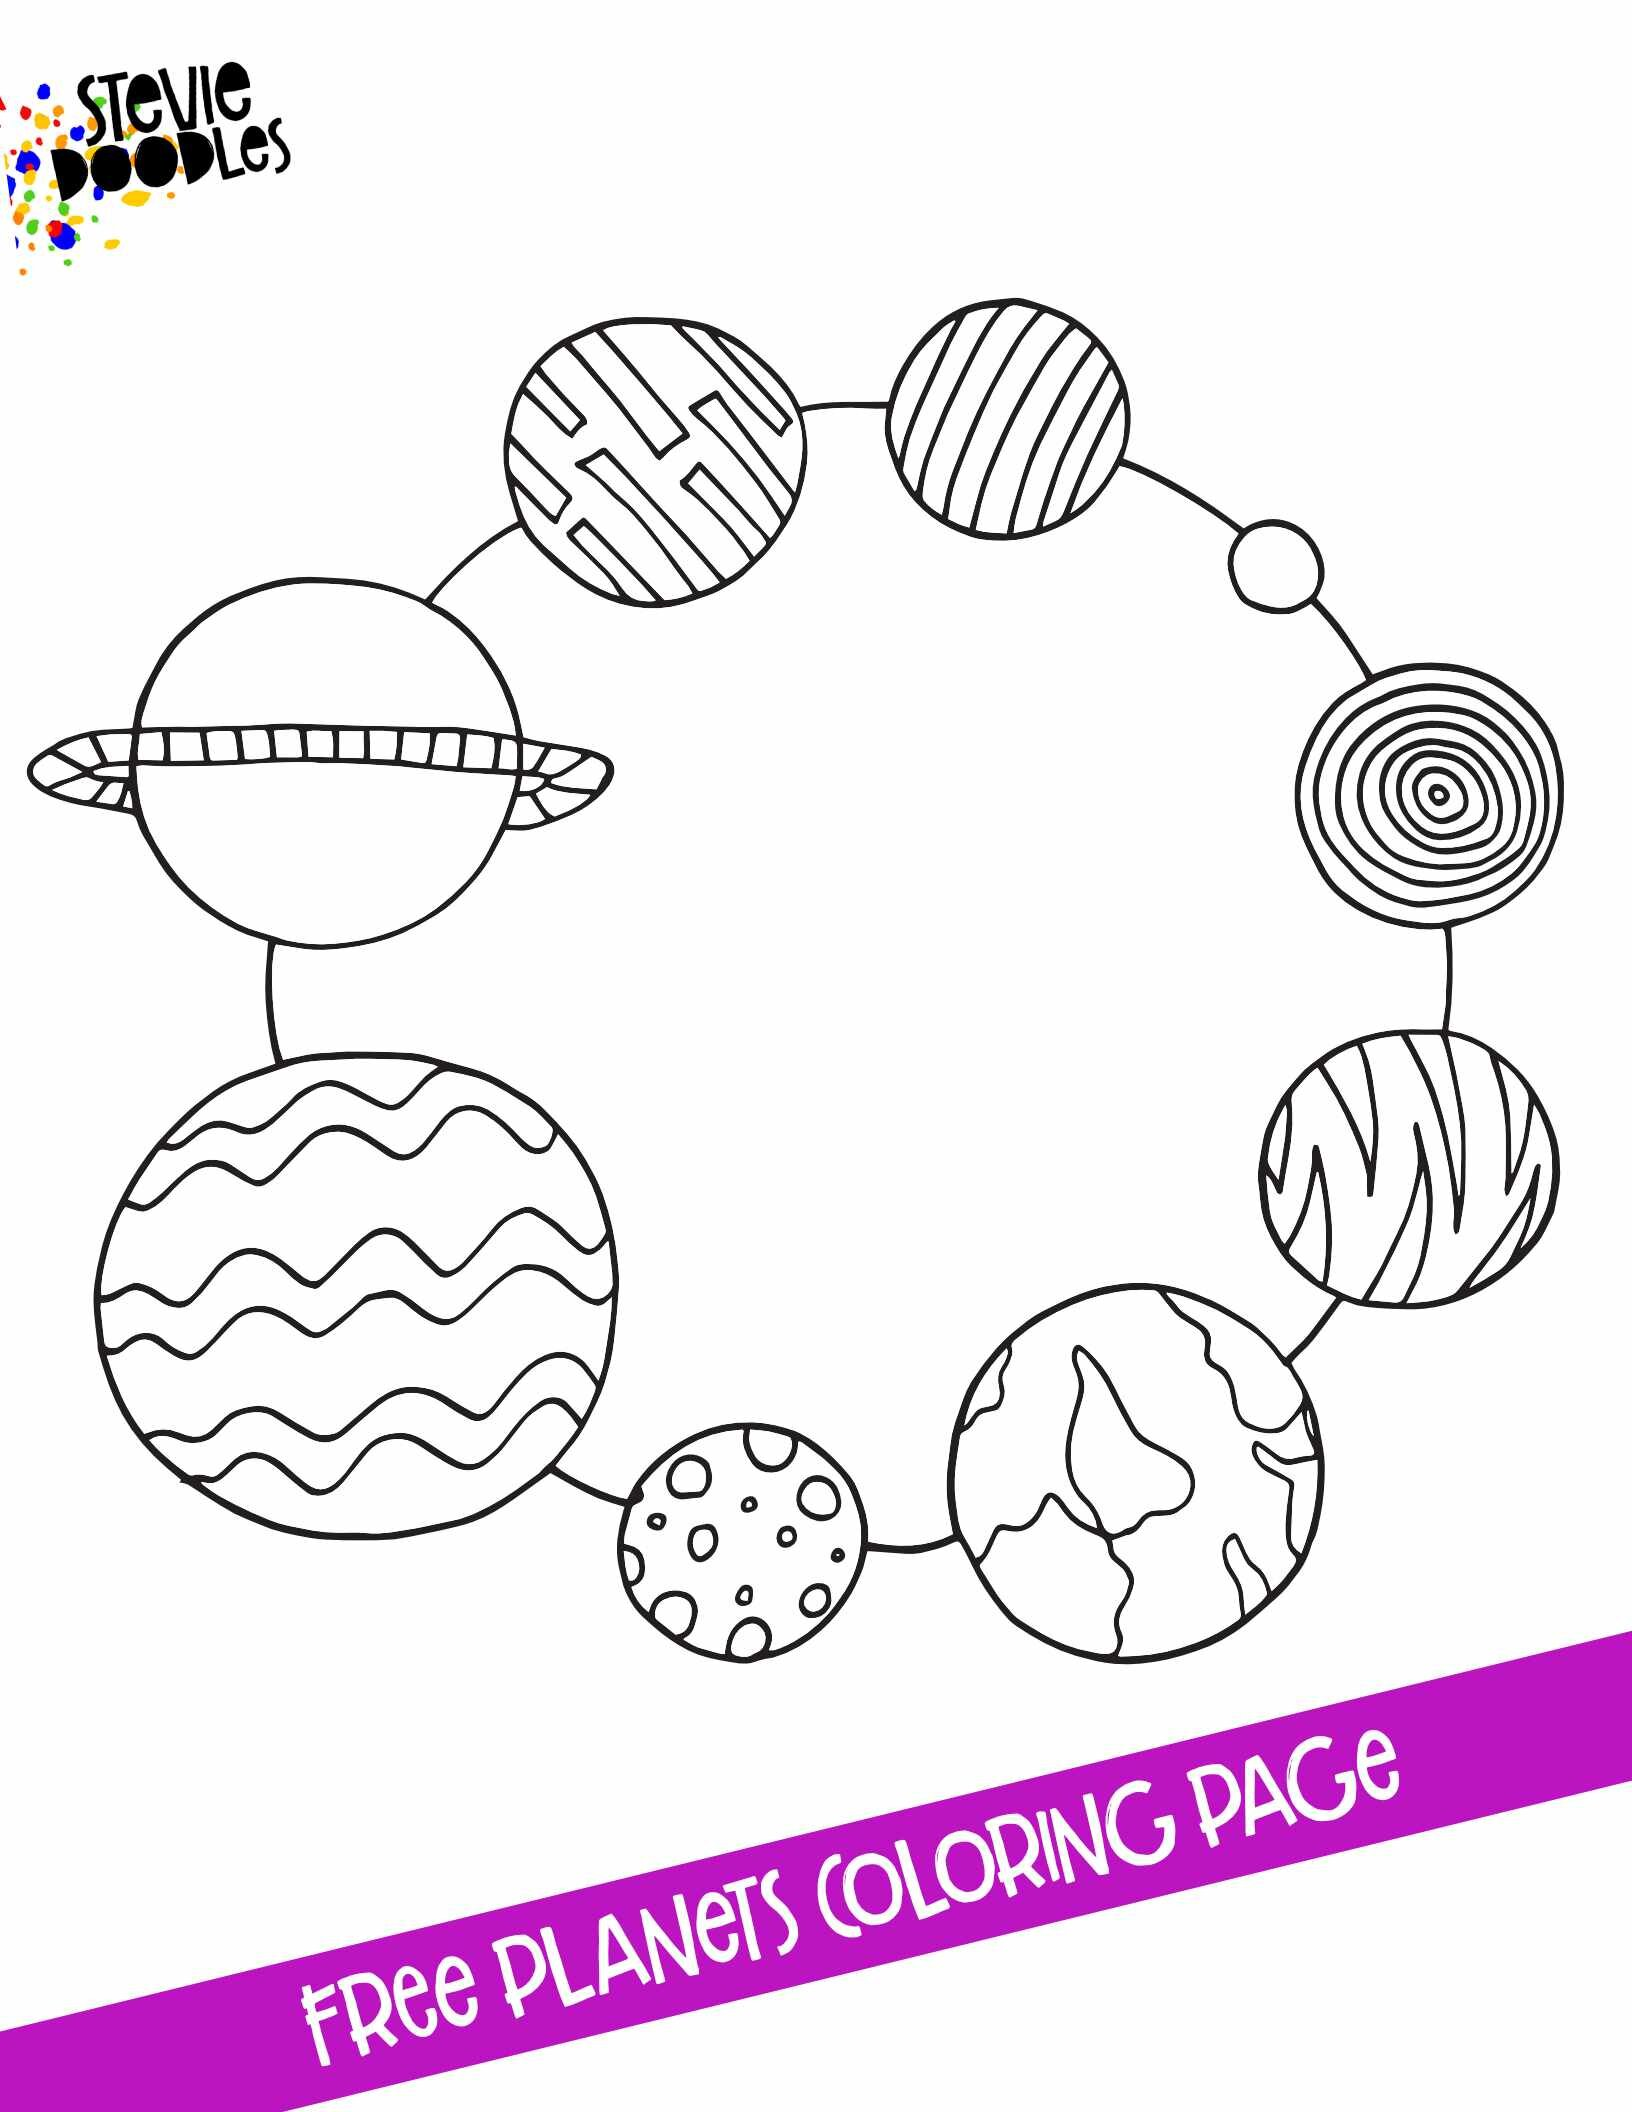 Ring Of Planets Free Printable Coloring Page Stevie Doodles